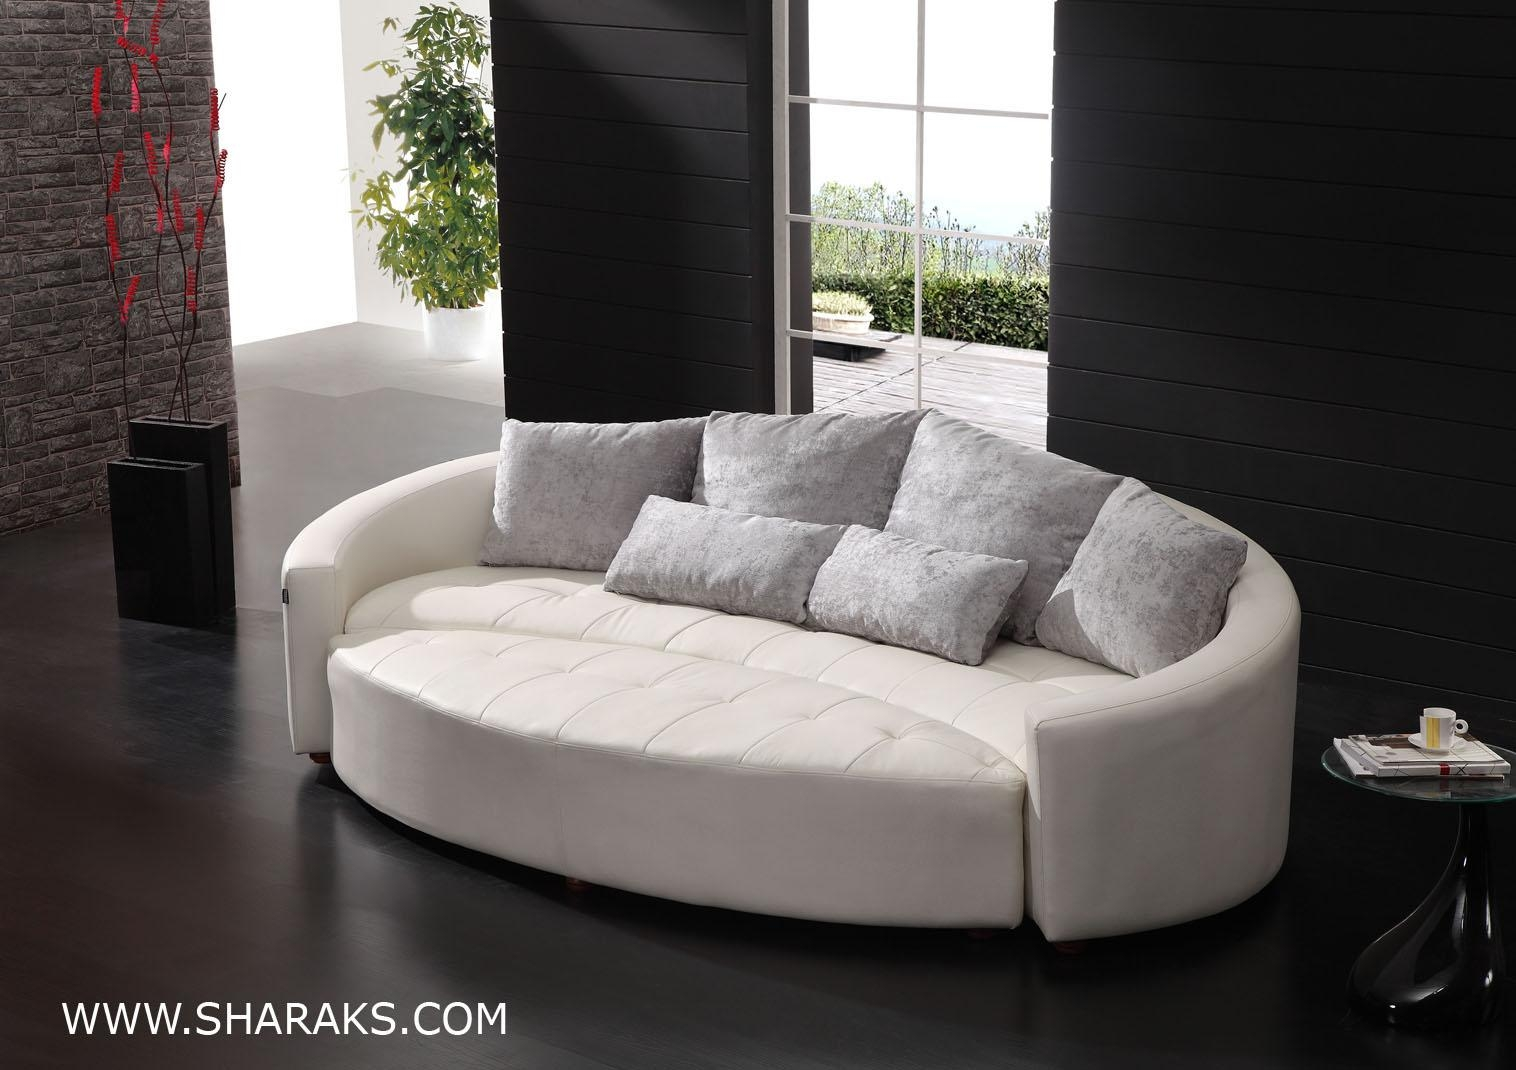 Big Sofa Chair 20 Best Collection Of Big Round Sofa Chairs Sofa Ideas